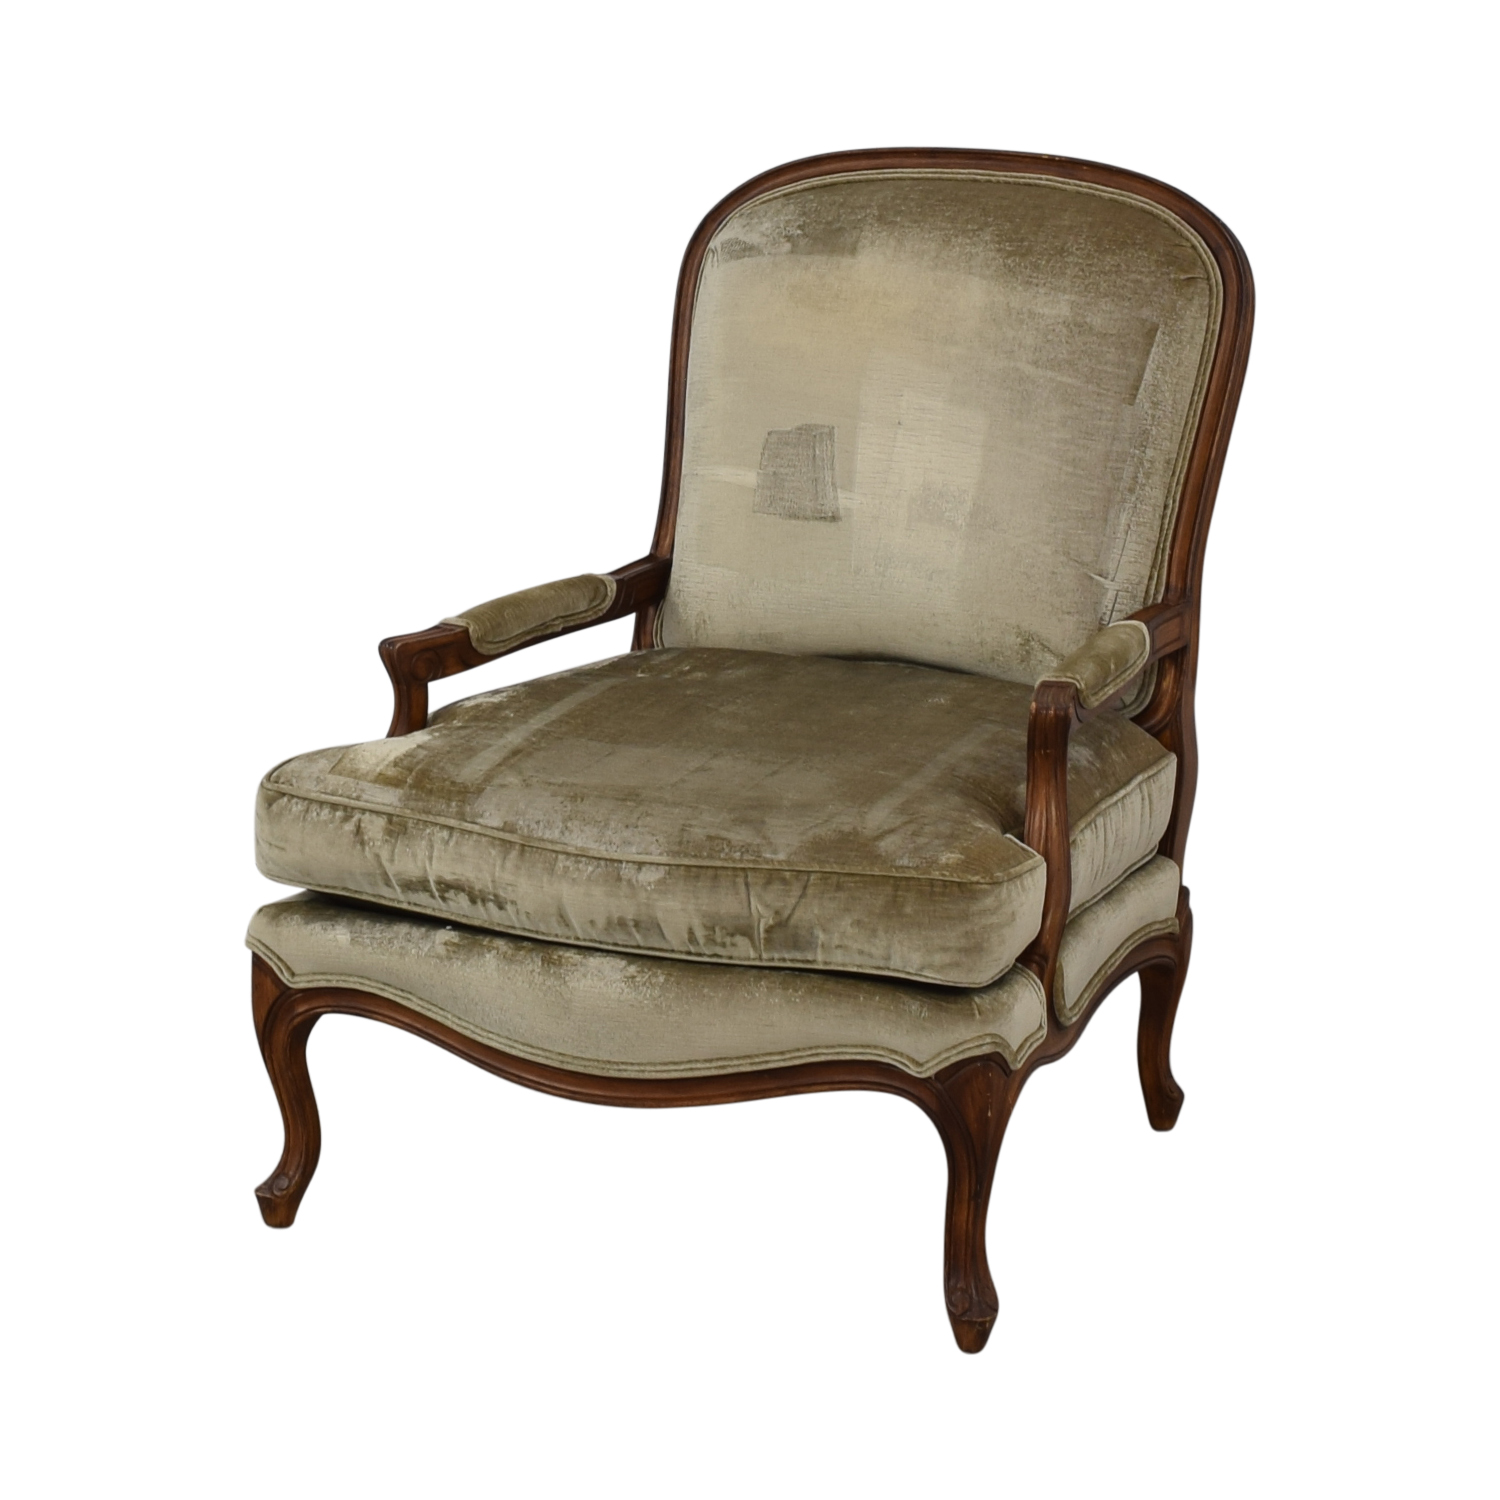 Drexel Heritage Country French Accent Chair / Chairs